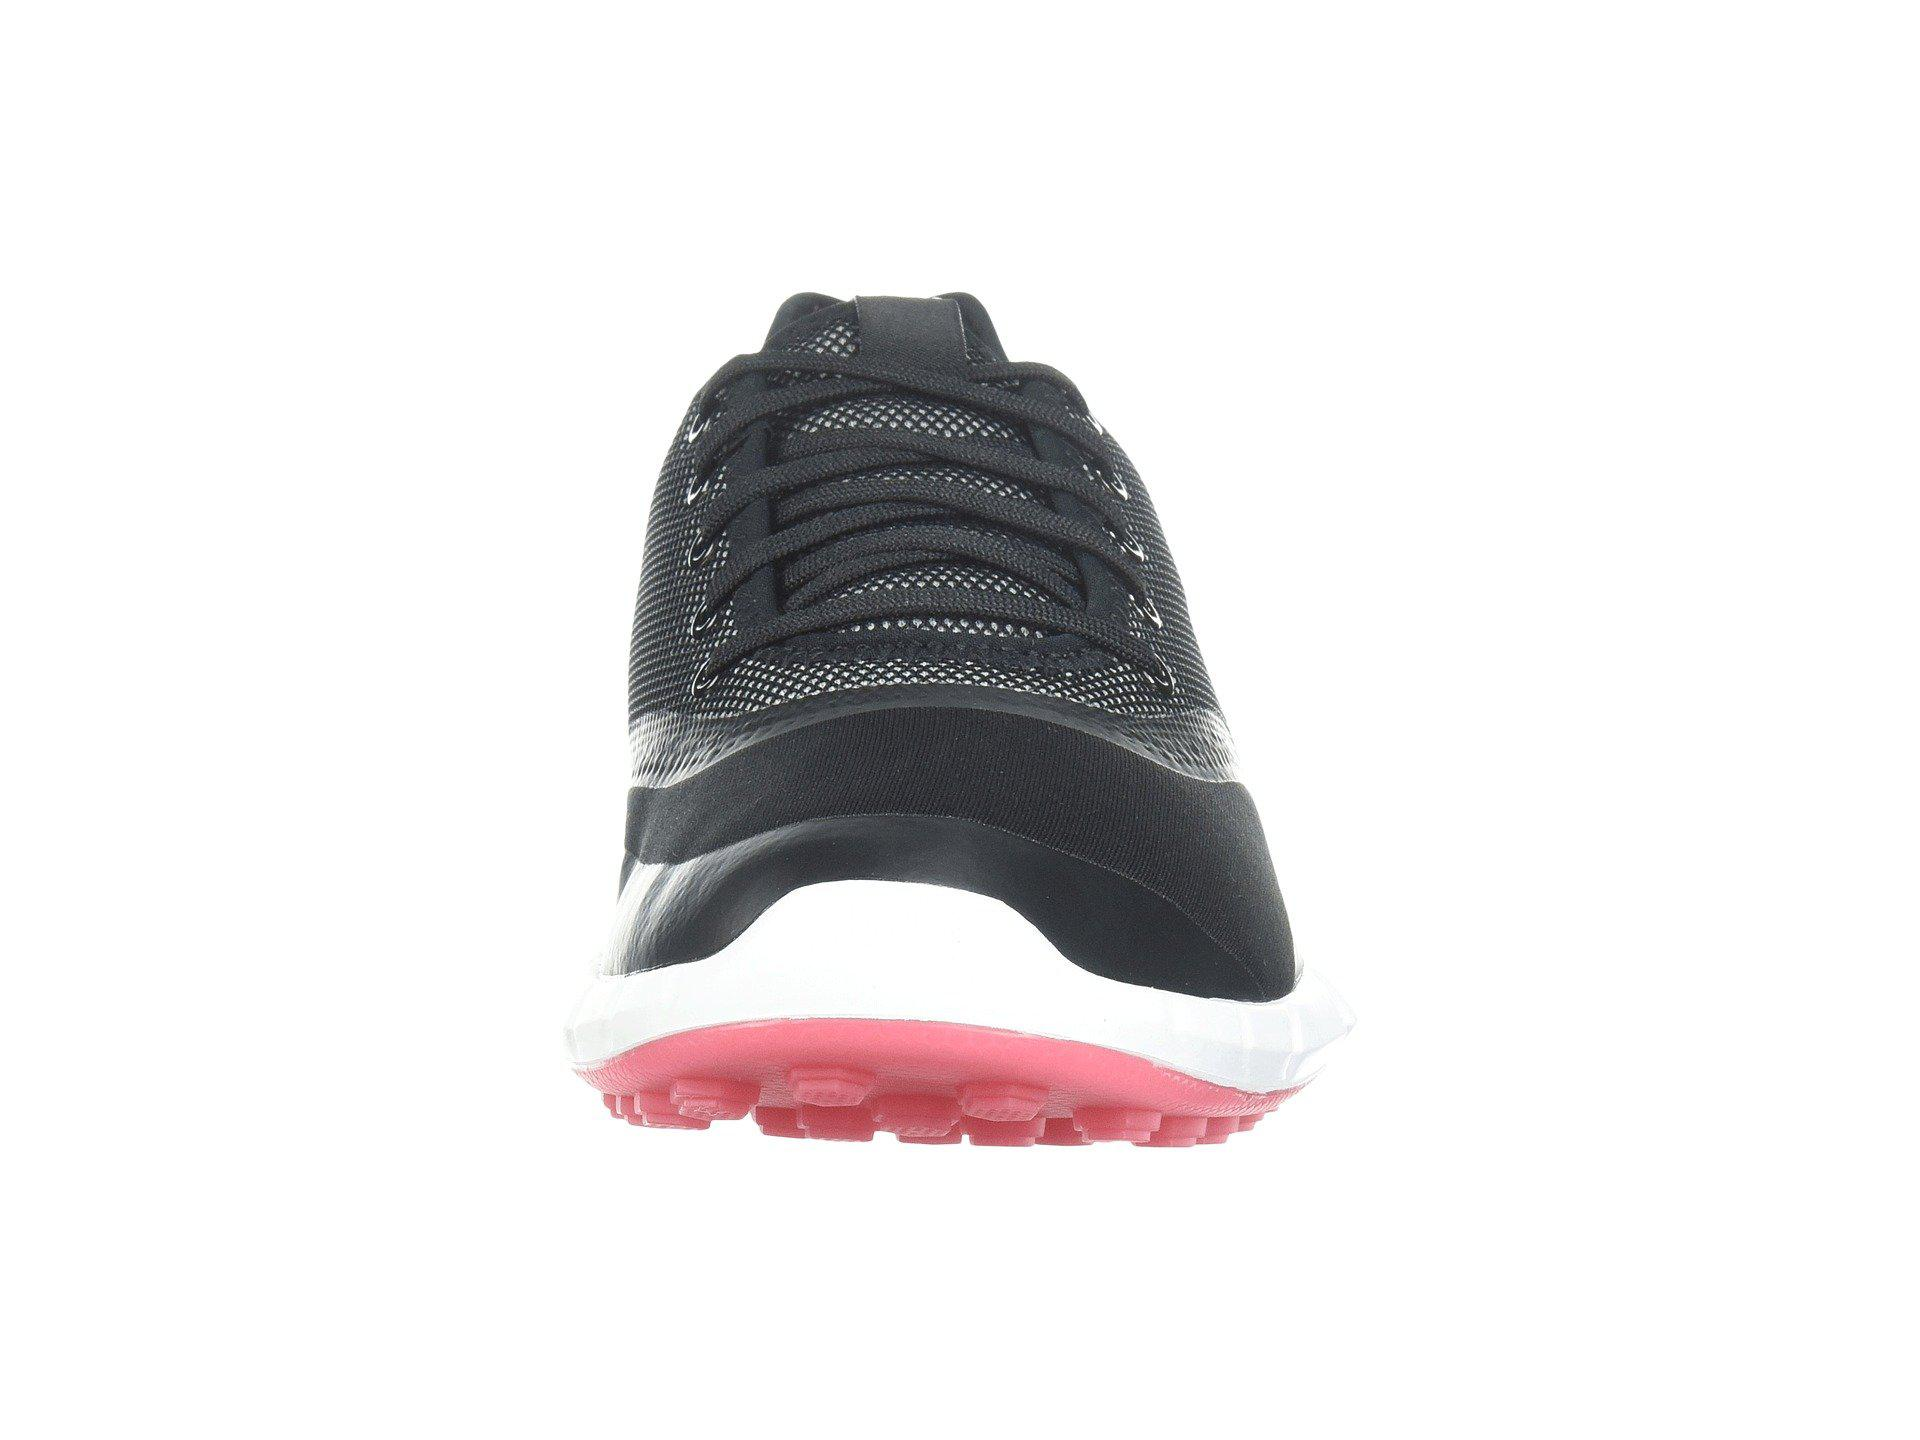 d7bd03d1de3a1b PUMA - Ignite Statement Low (puma Black puma White) Women s Golf Shoes -.  View fullscreen